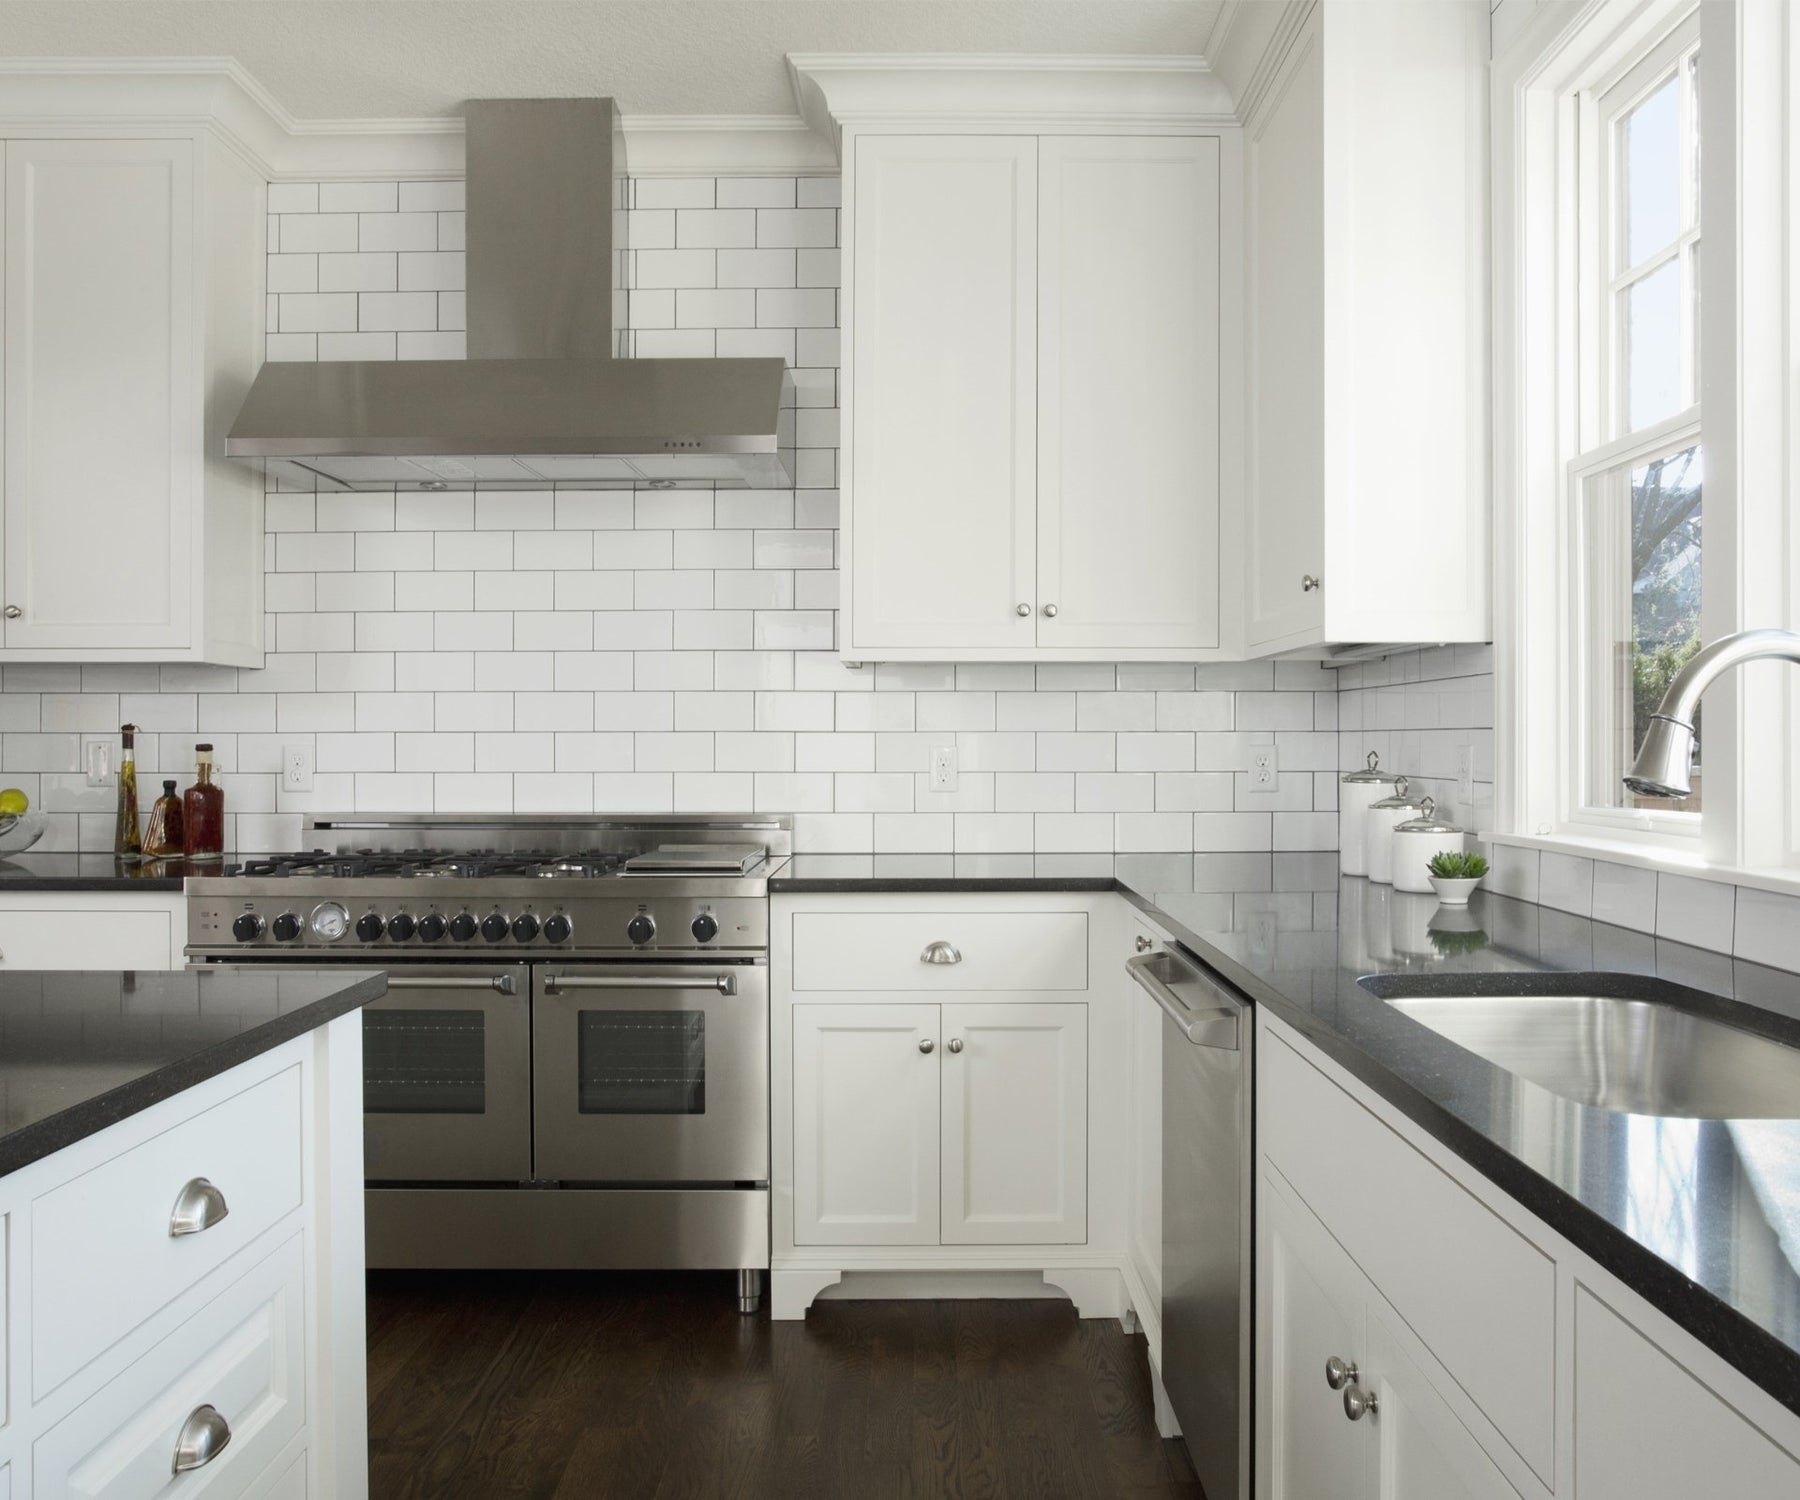 Shaker kitchen tiles-ceramicplanet.co.uk